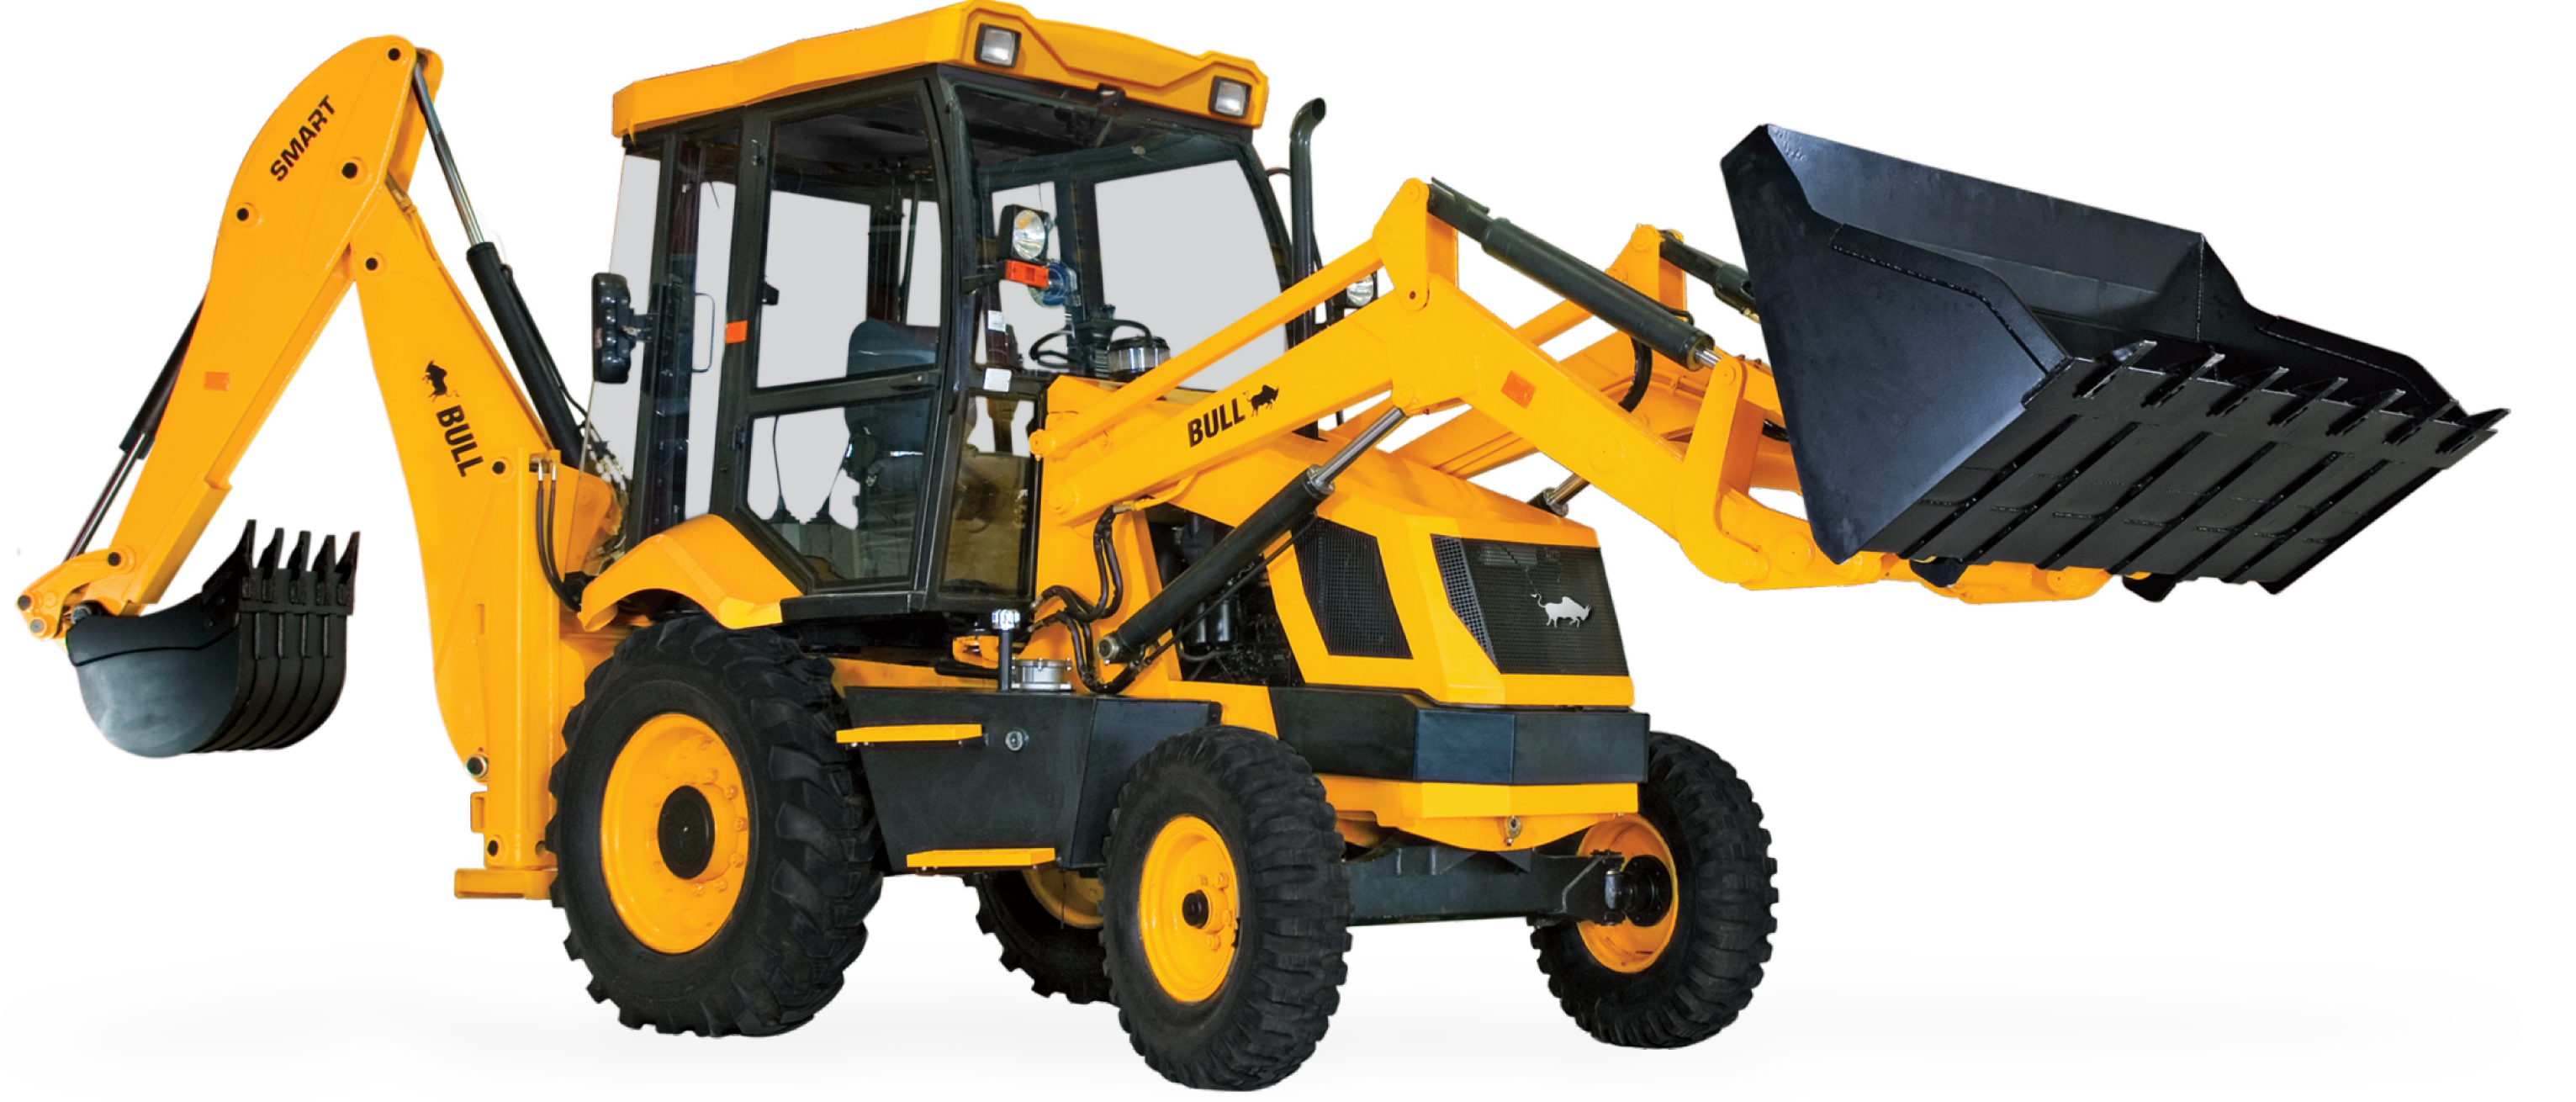 Yellow clipart backhoe Backhoe Free Smart loader Bull